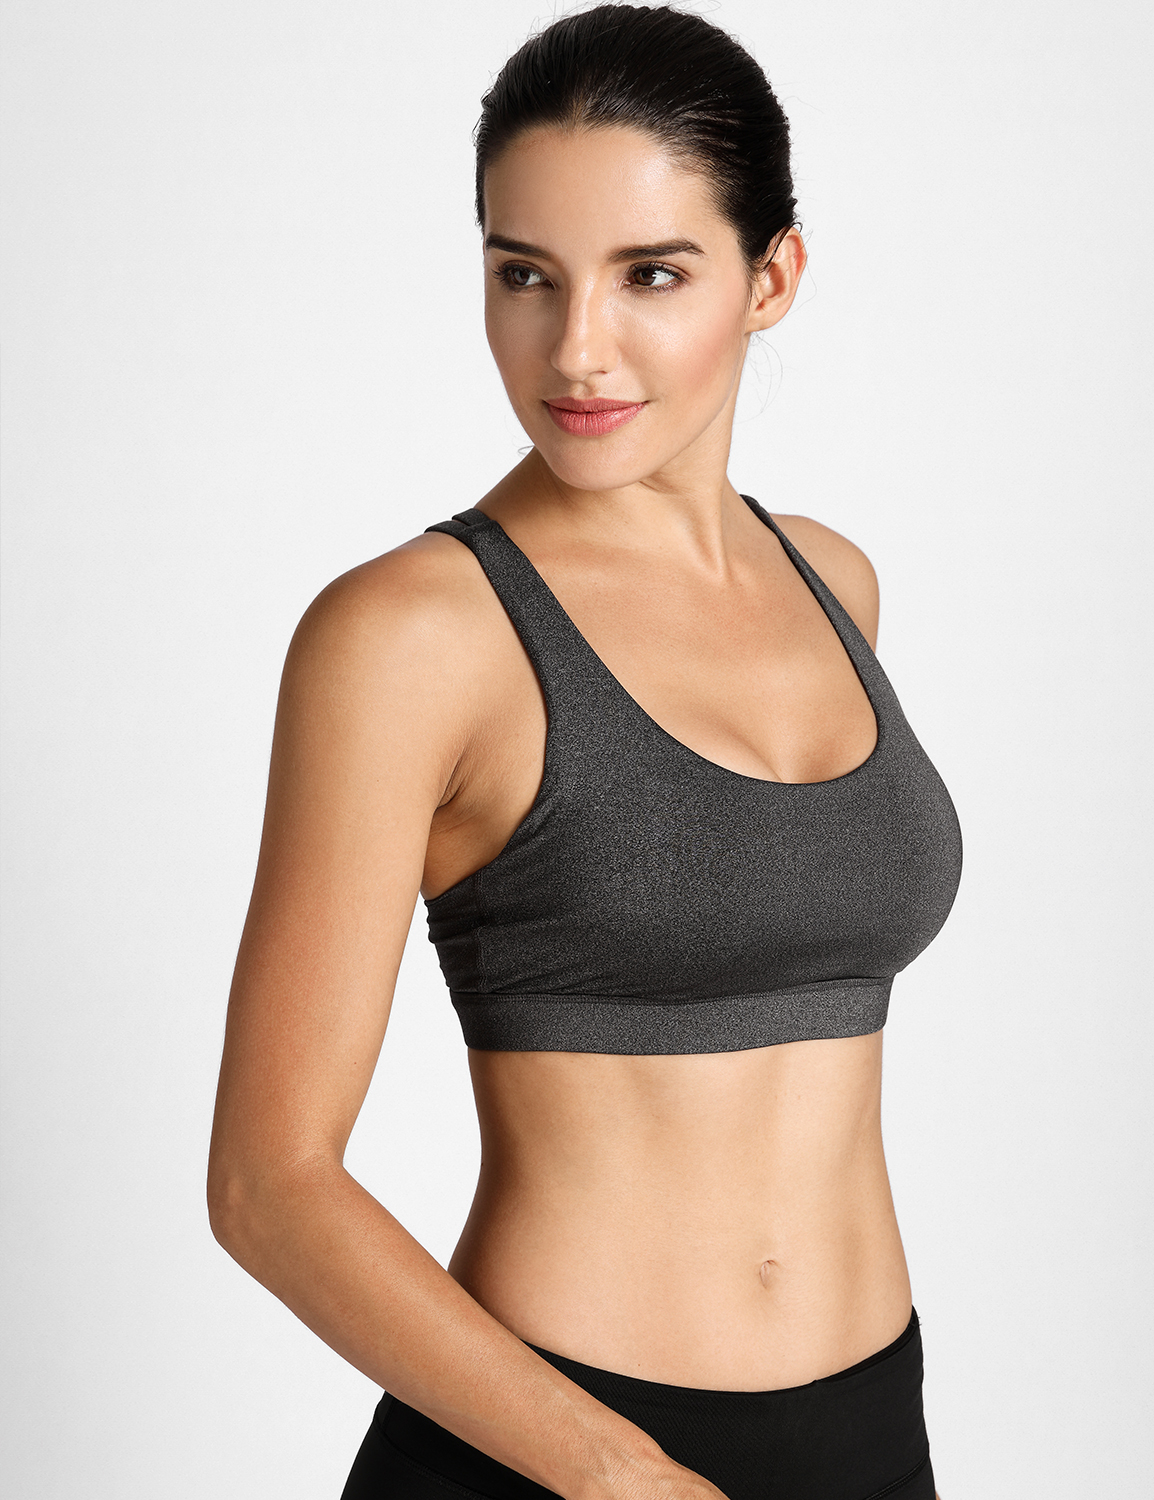 Workout Wirefree Yoga Top for Women Criss Cross Back 72/_SBLUE S//M Strappy Padded Sports Bra